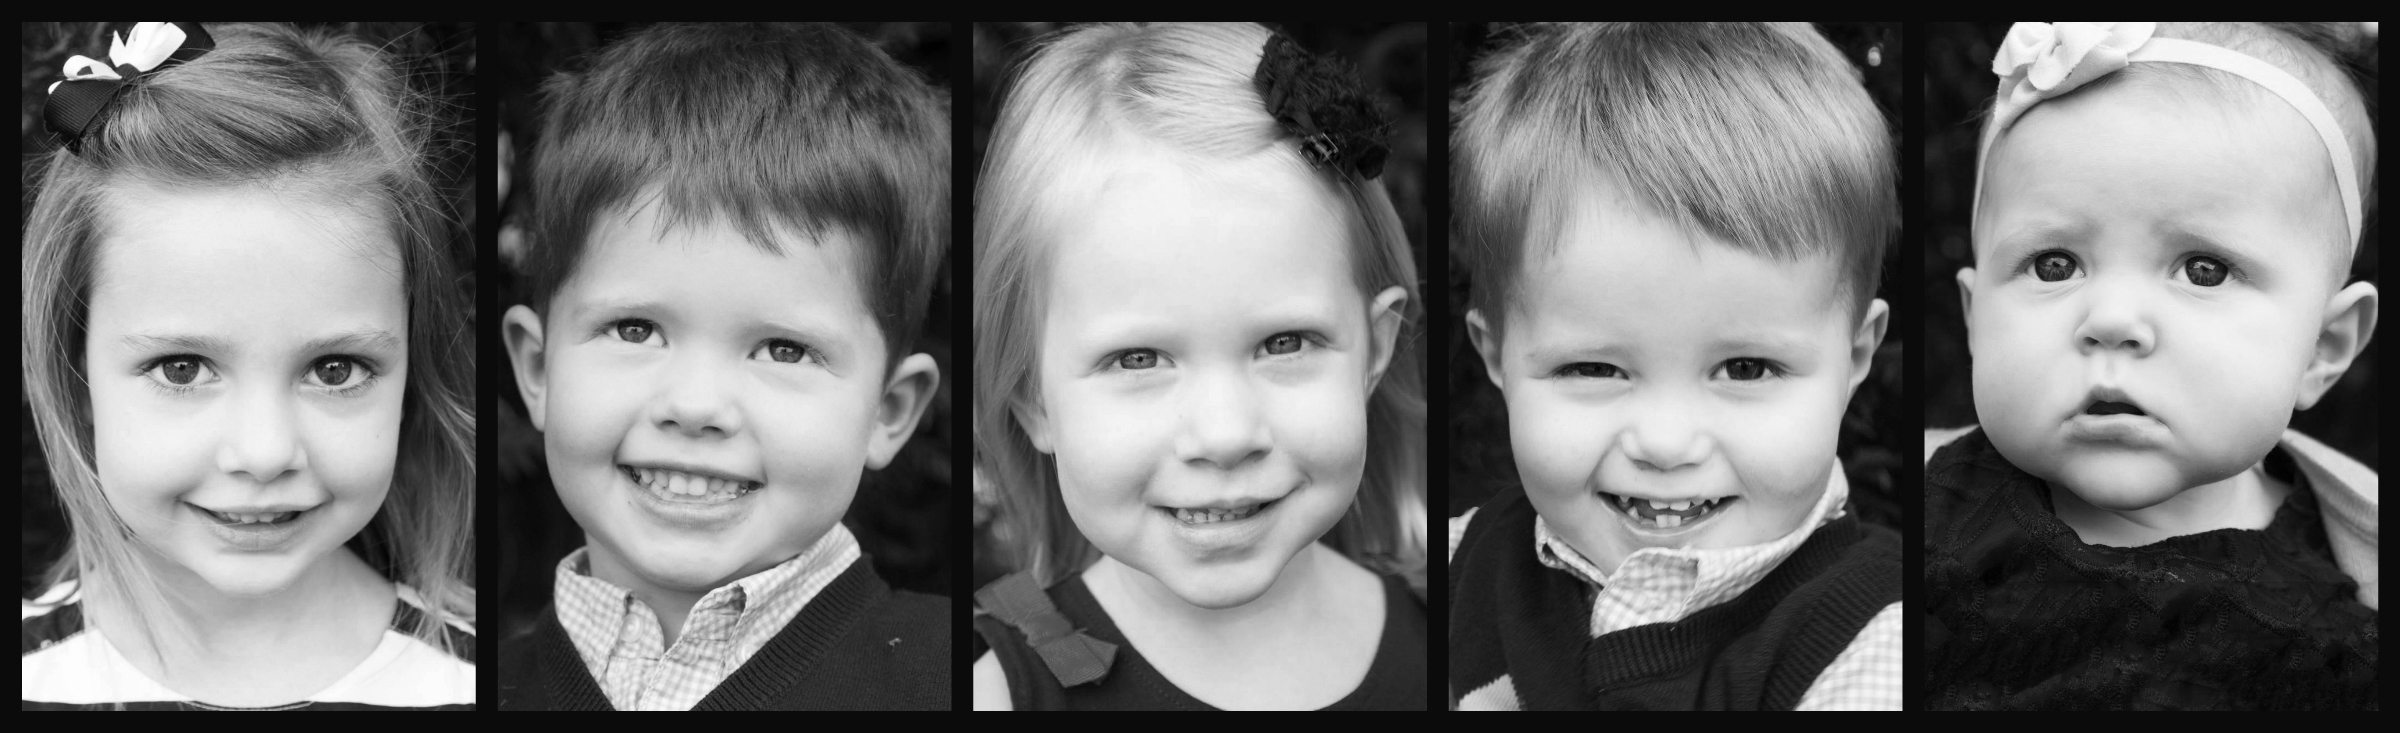 Lewis grandchildren collage2